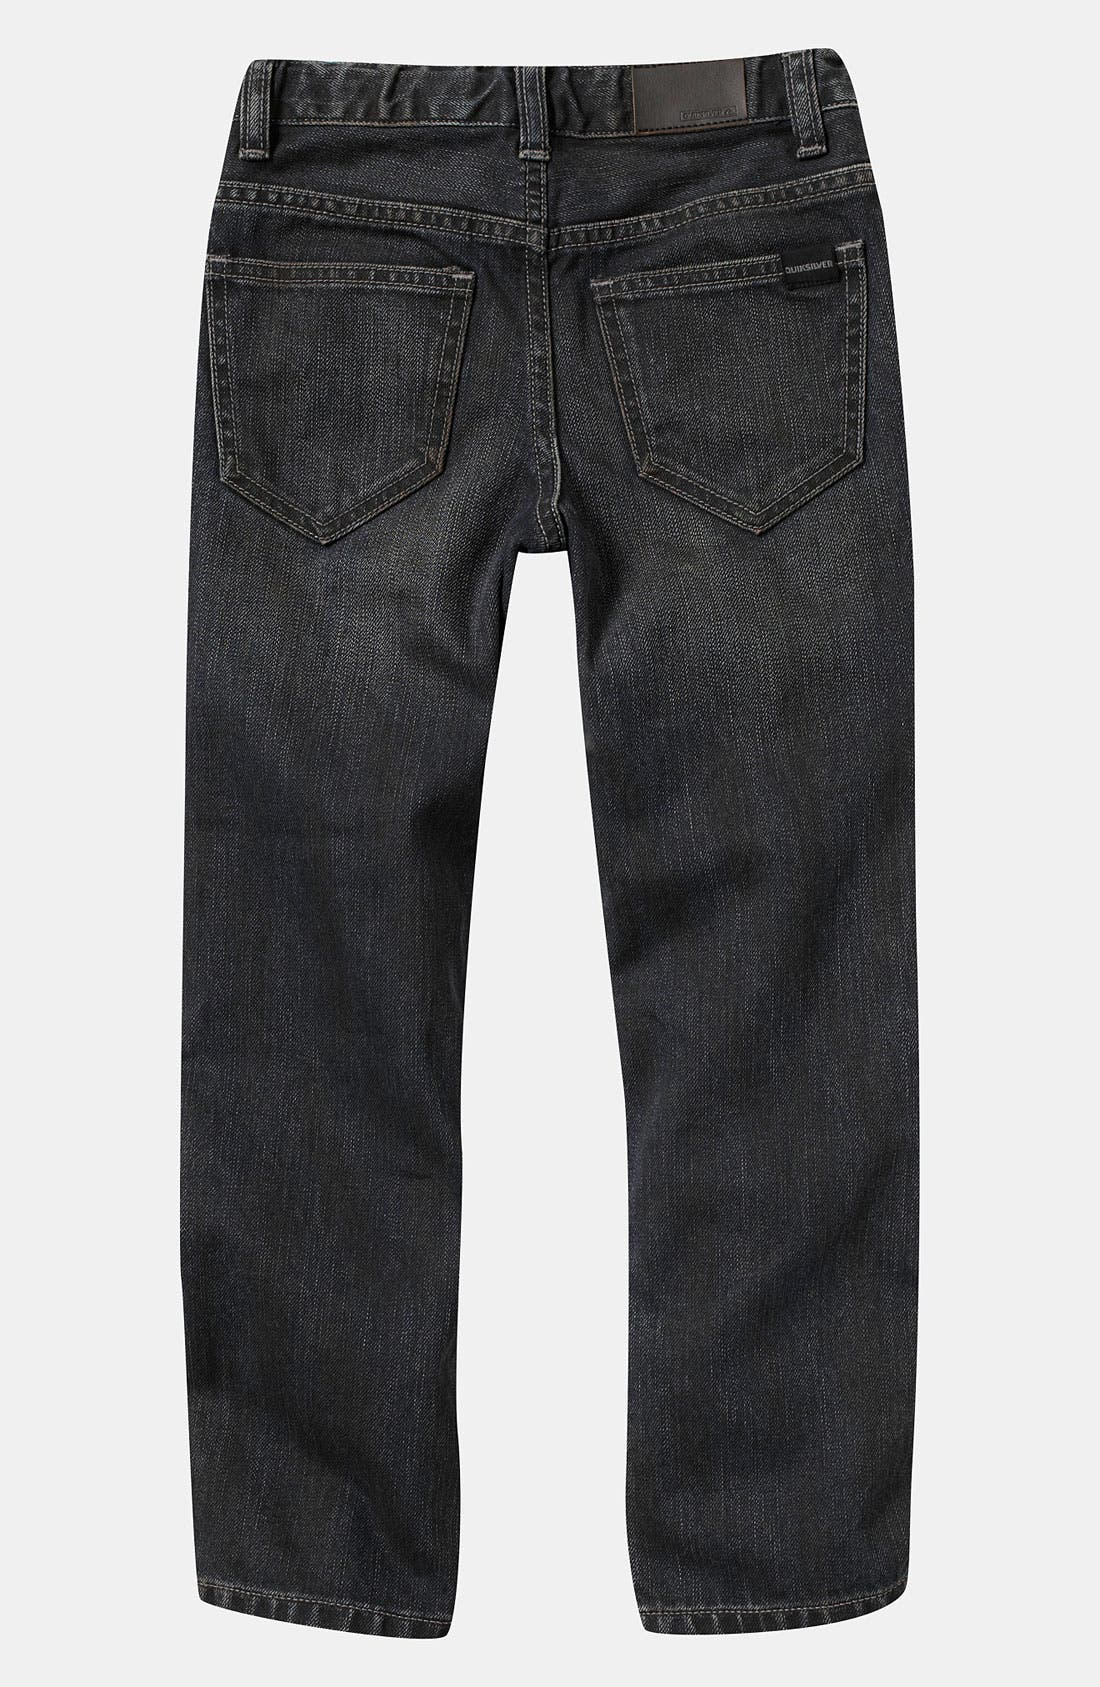 Alternate Image 1 Selected - Quiksilver 'Revolver' Jeans (Toddler)